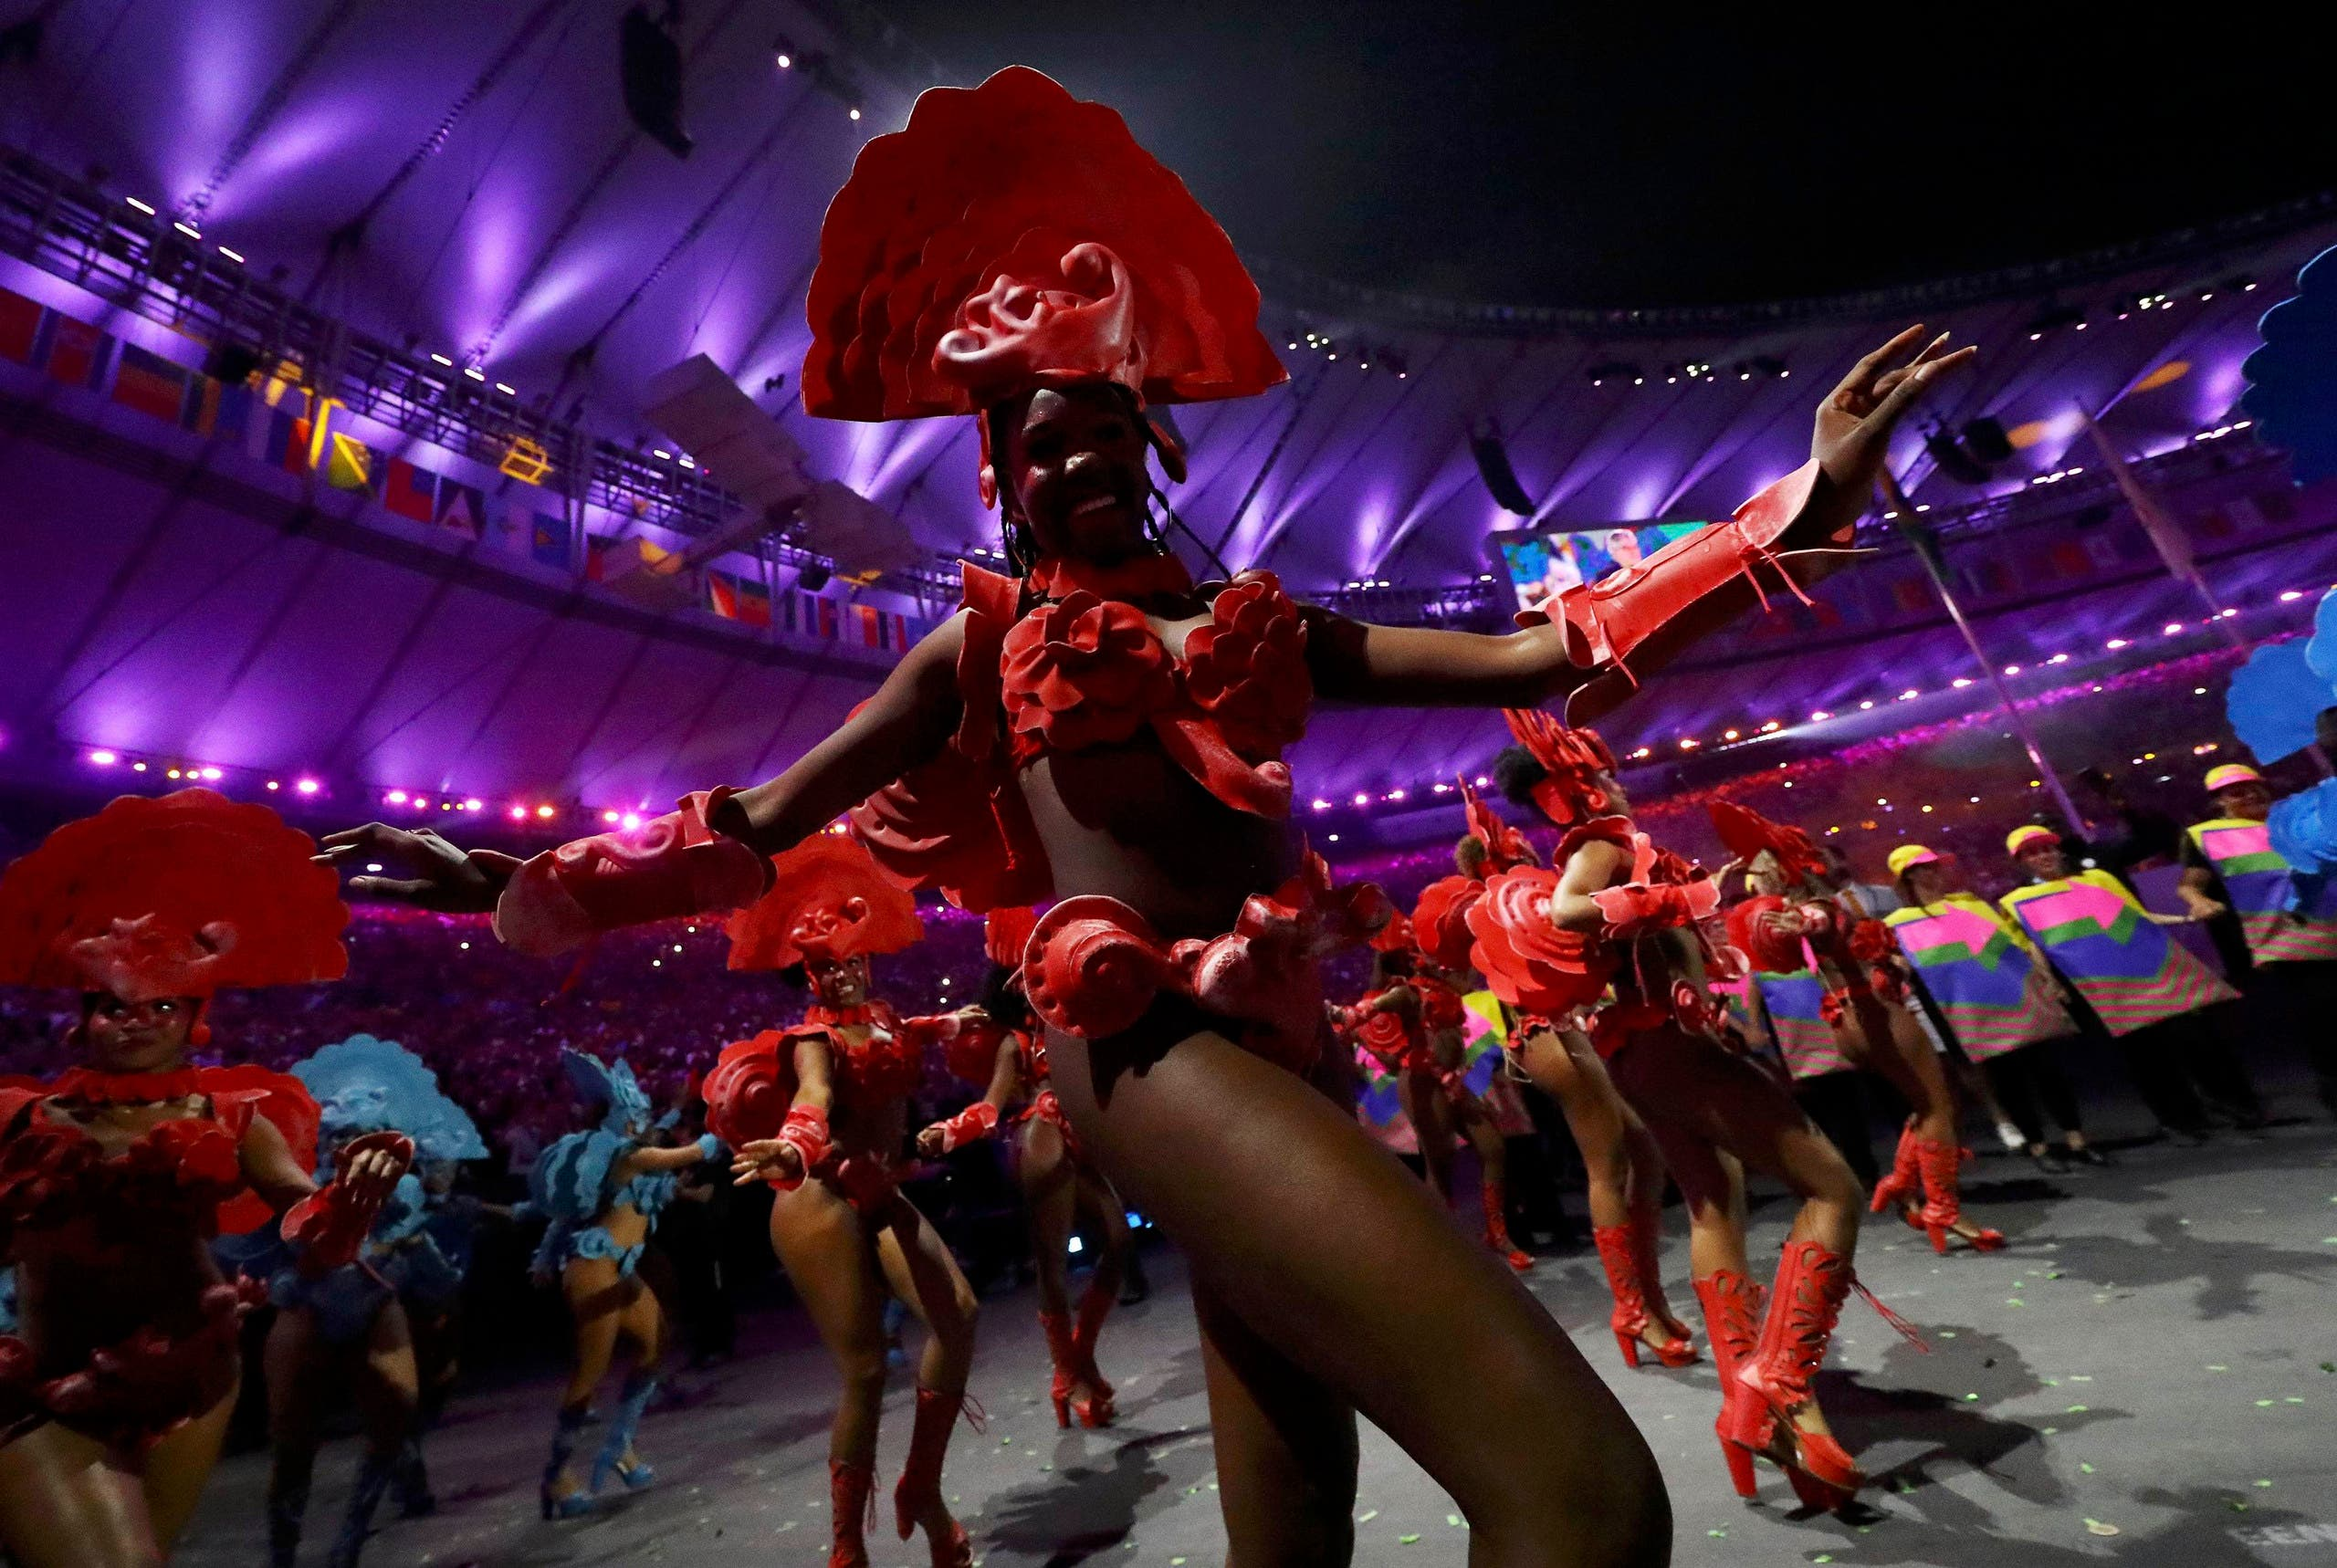 Performers take part in the opening ceremony. REUTERS